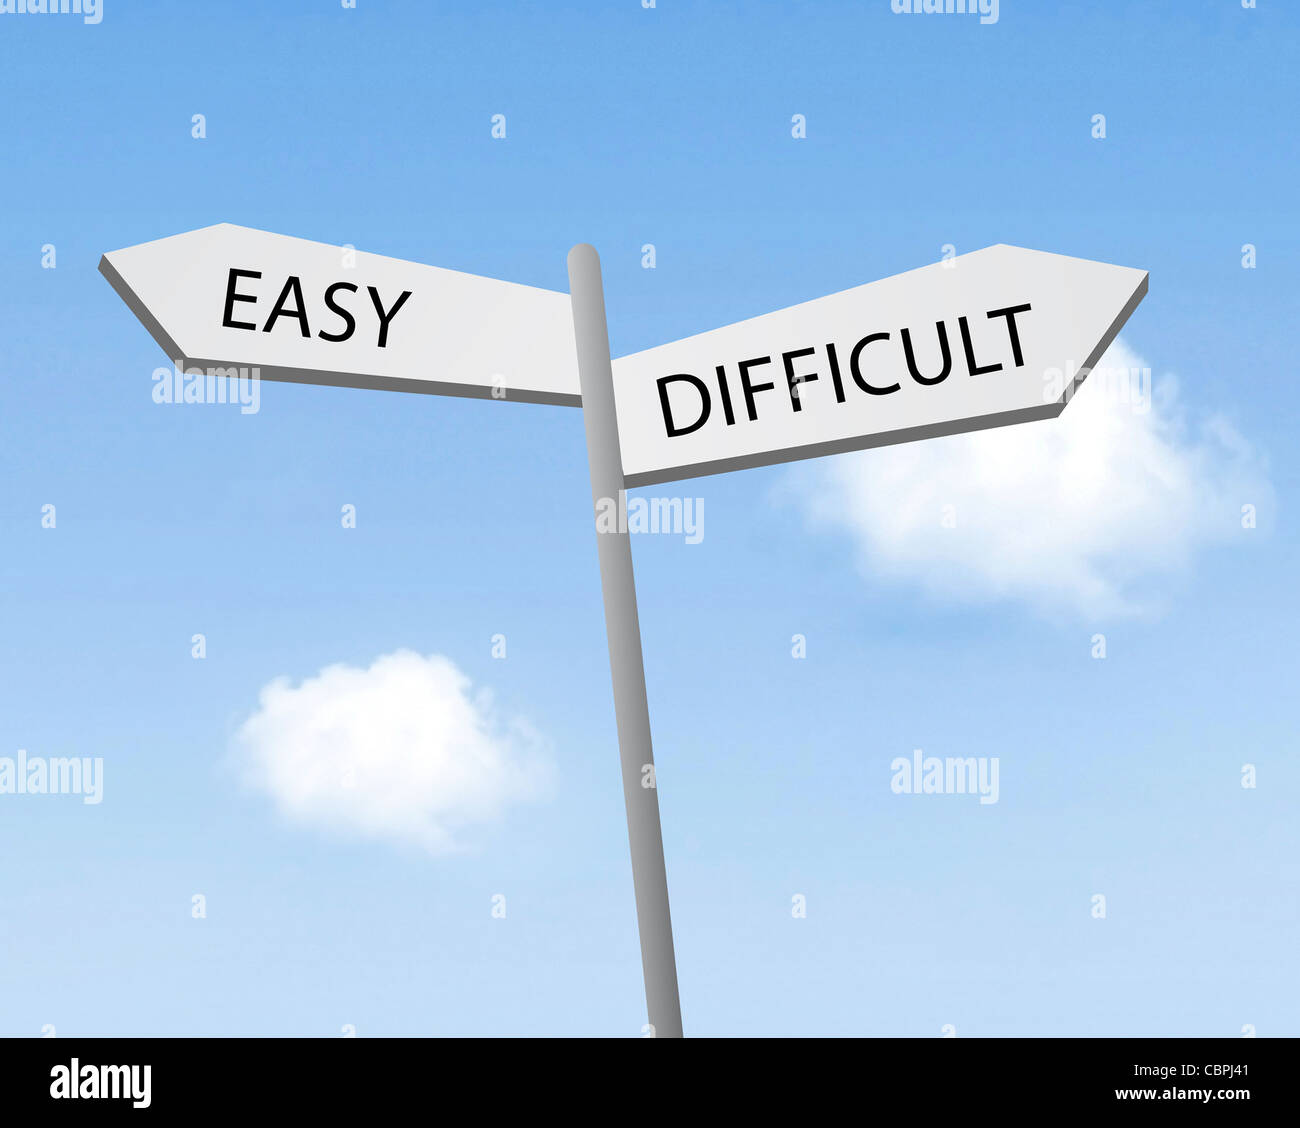 Easy or difficult - Stock Image